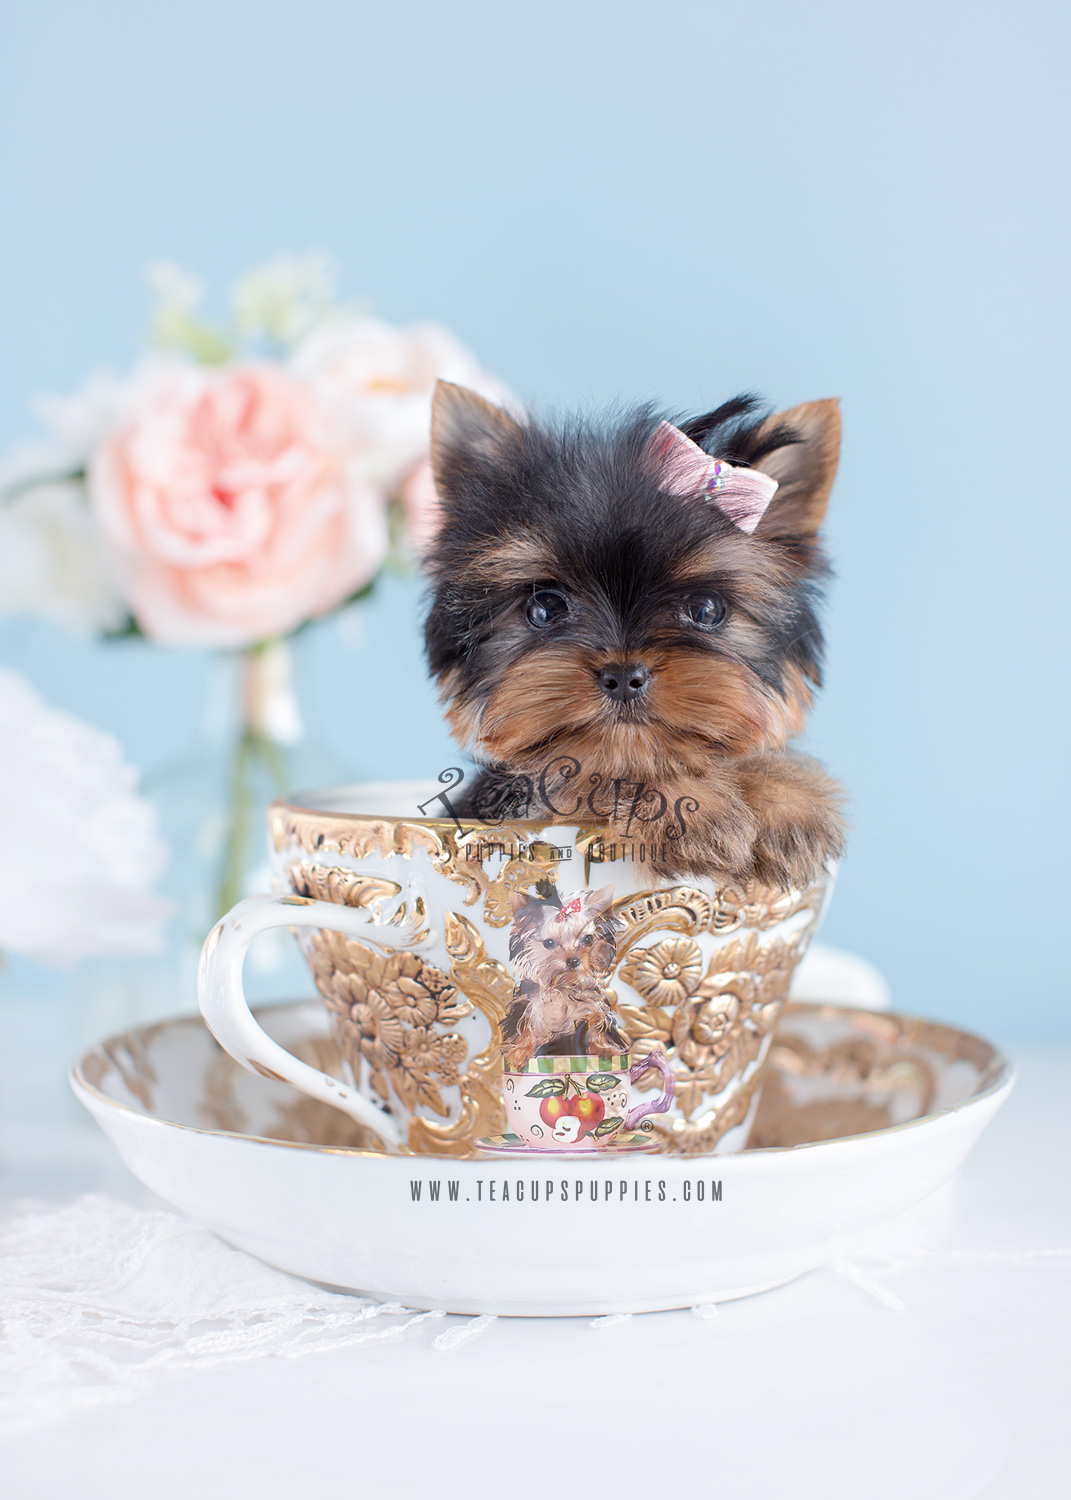 Cute Little Yorkie Puppies South Florida Teacups Puppies Boutique